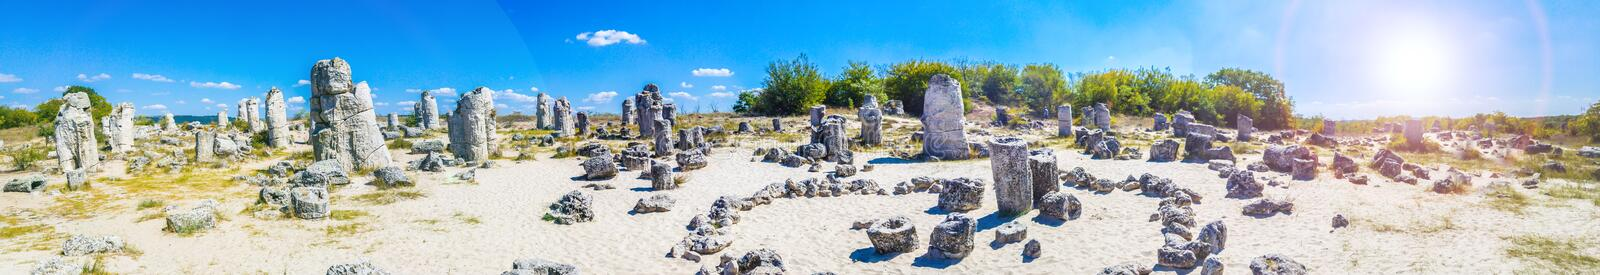 Panorama of Pobiti Kamani, Bulgaria. Pobiti Kamani Bulgarian, `planted stones`, also known as The Stone Desert, is a desert-like rock phenomenon located on the royalty free stock photo